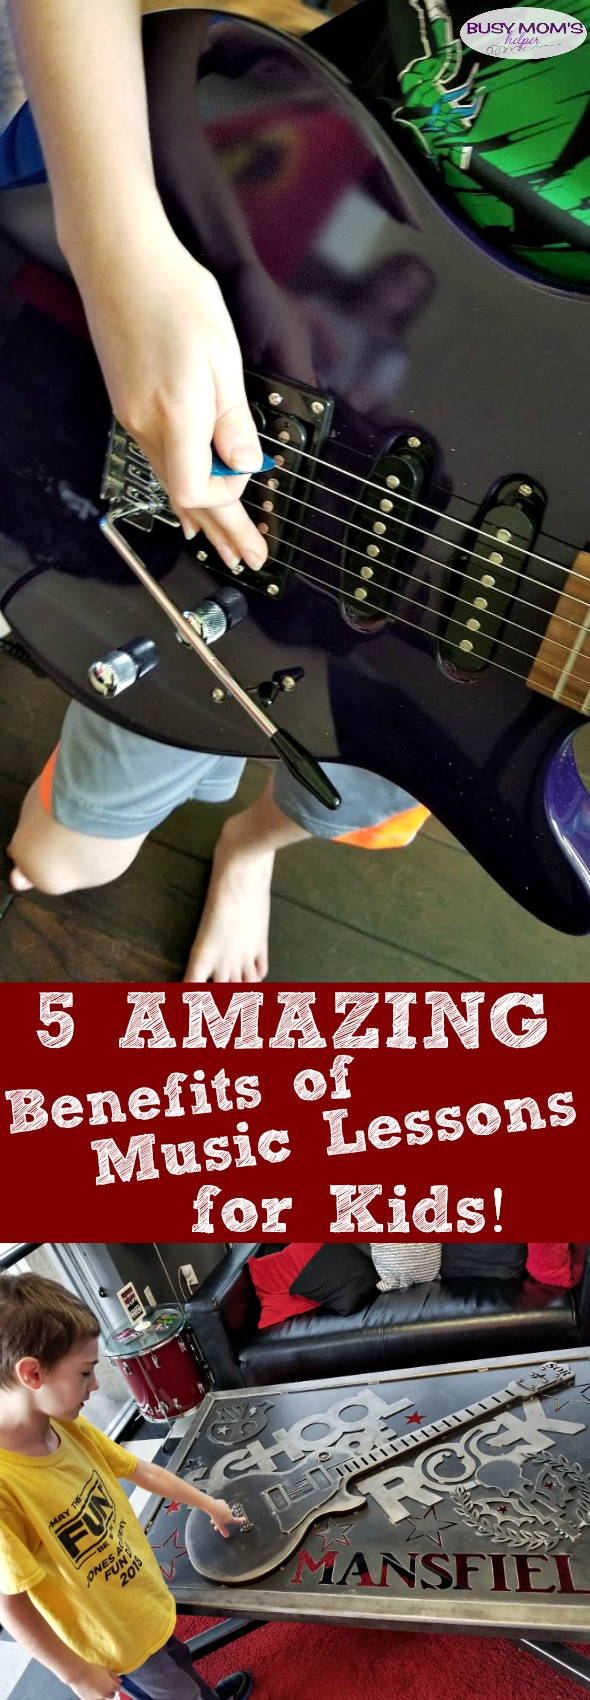 5 Benefits of Music Lessons for Kids #ad #schoolofrockdfw #sormansfield #music #kids #parenting